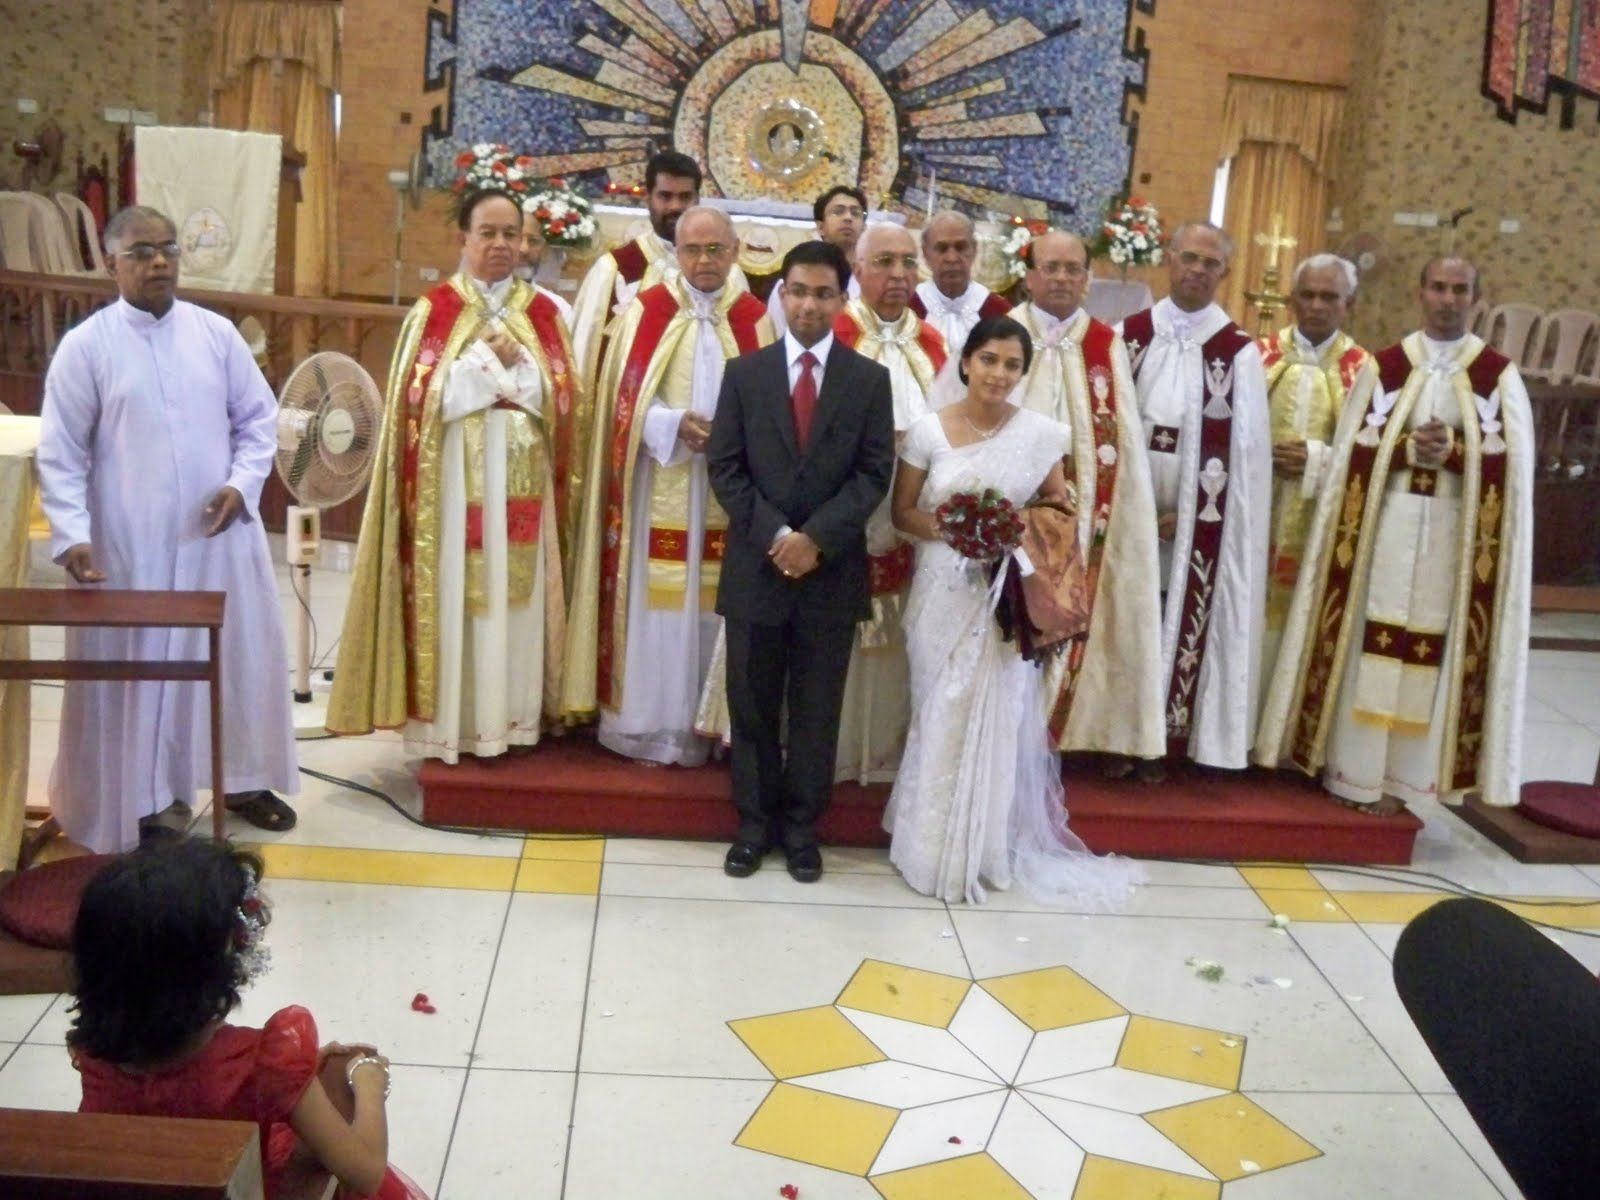 Within The Roman Catholic Church Exchange Of Wedding Vows Is Central Part